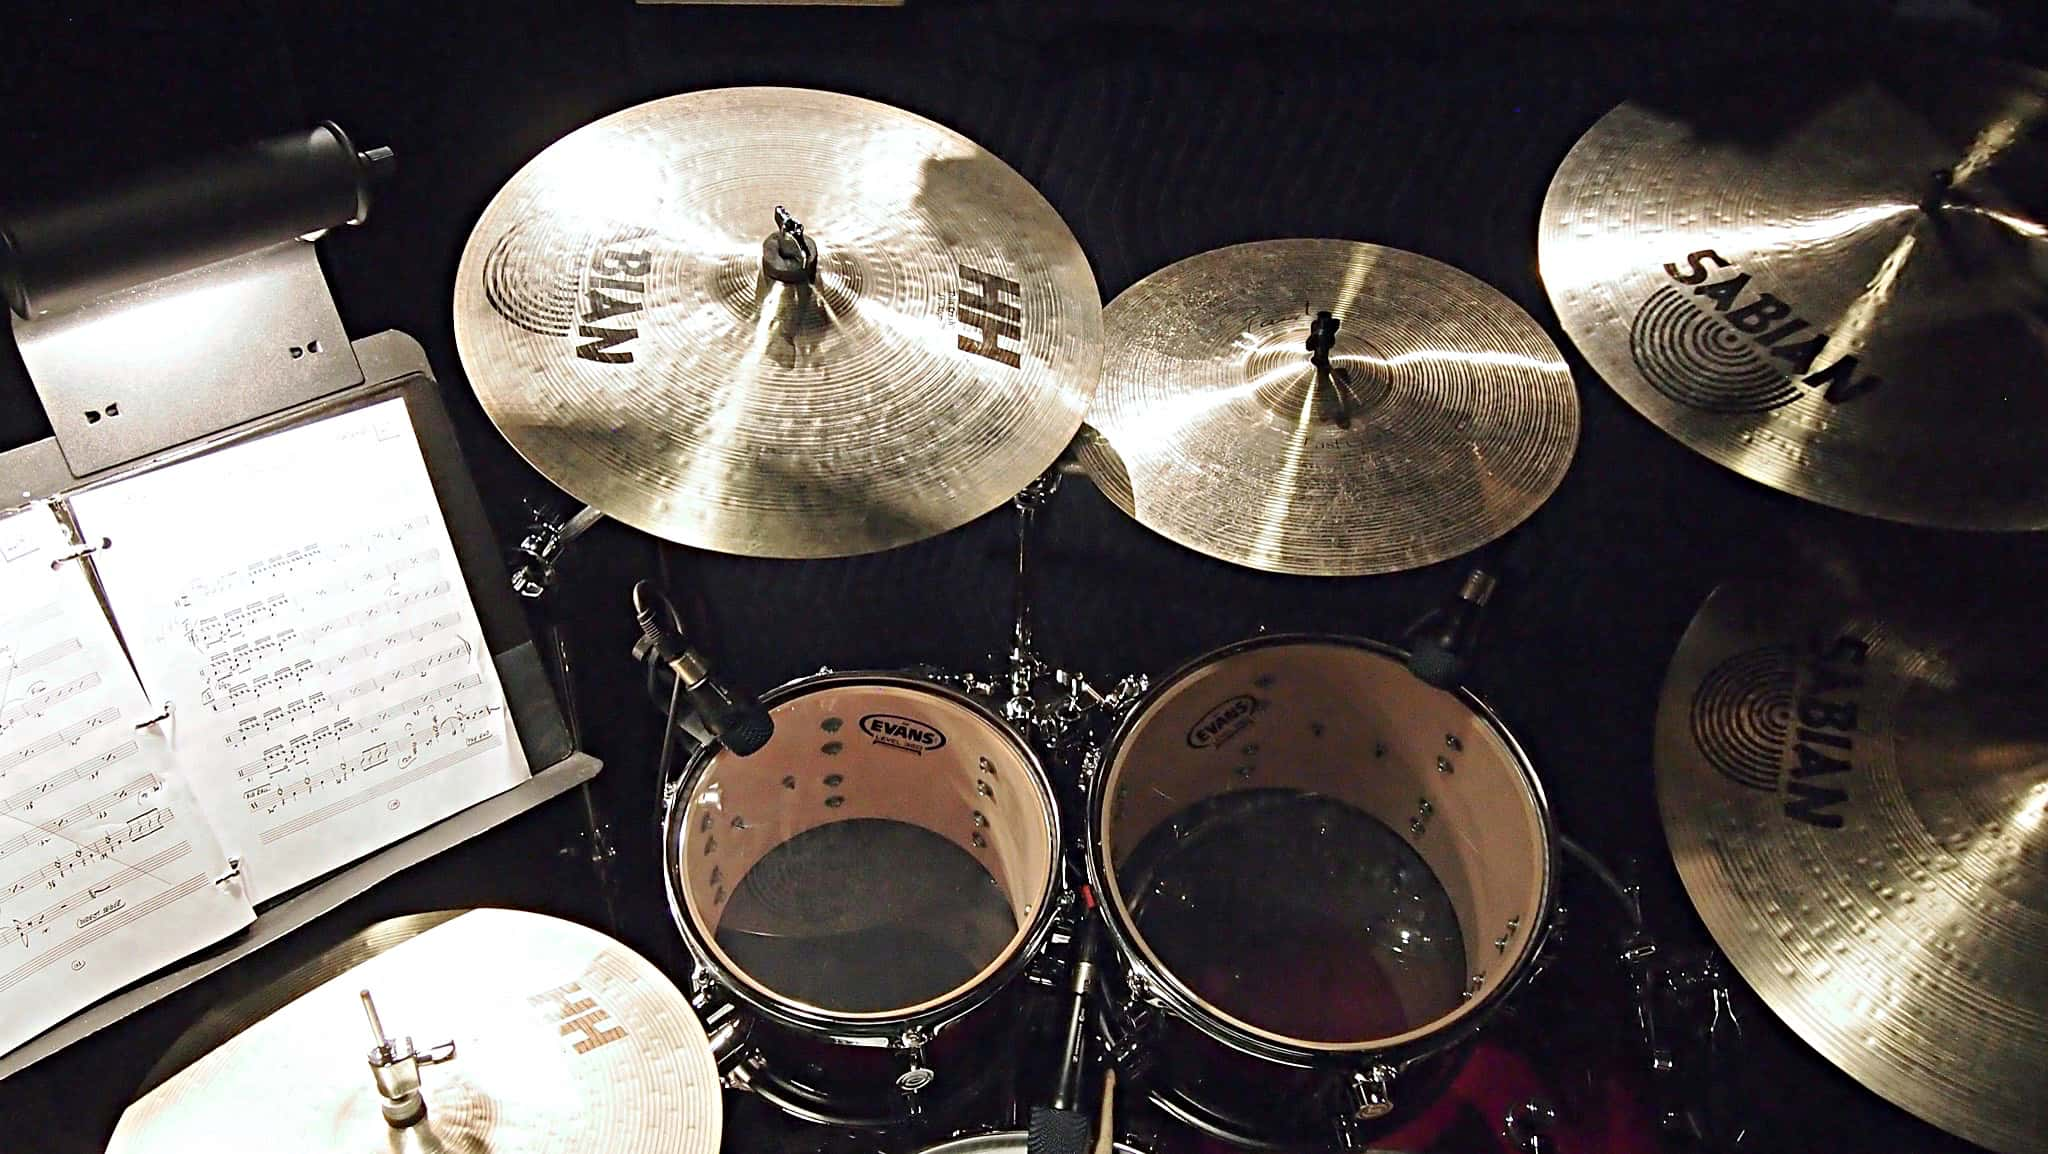 Jim Reif's drum set setup for Dreamgirls at the Village Theater in Seattle, Washington.